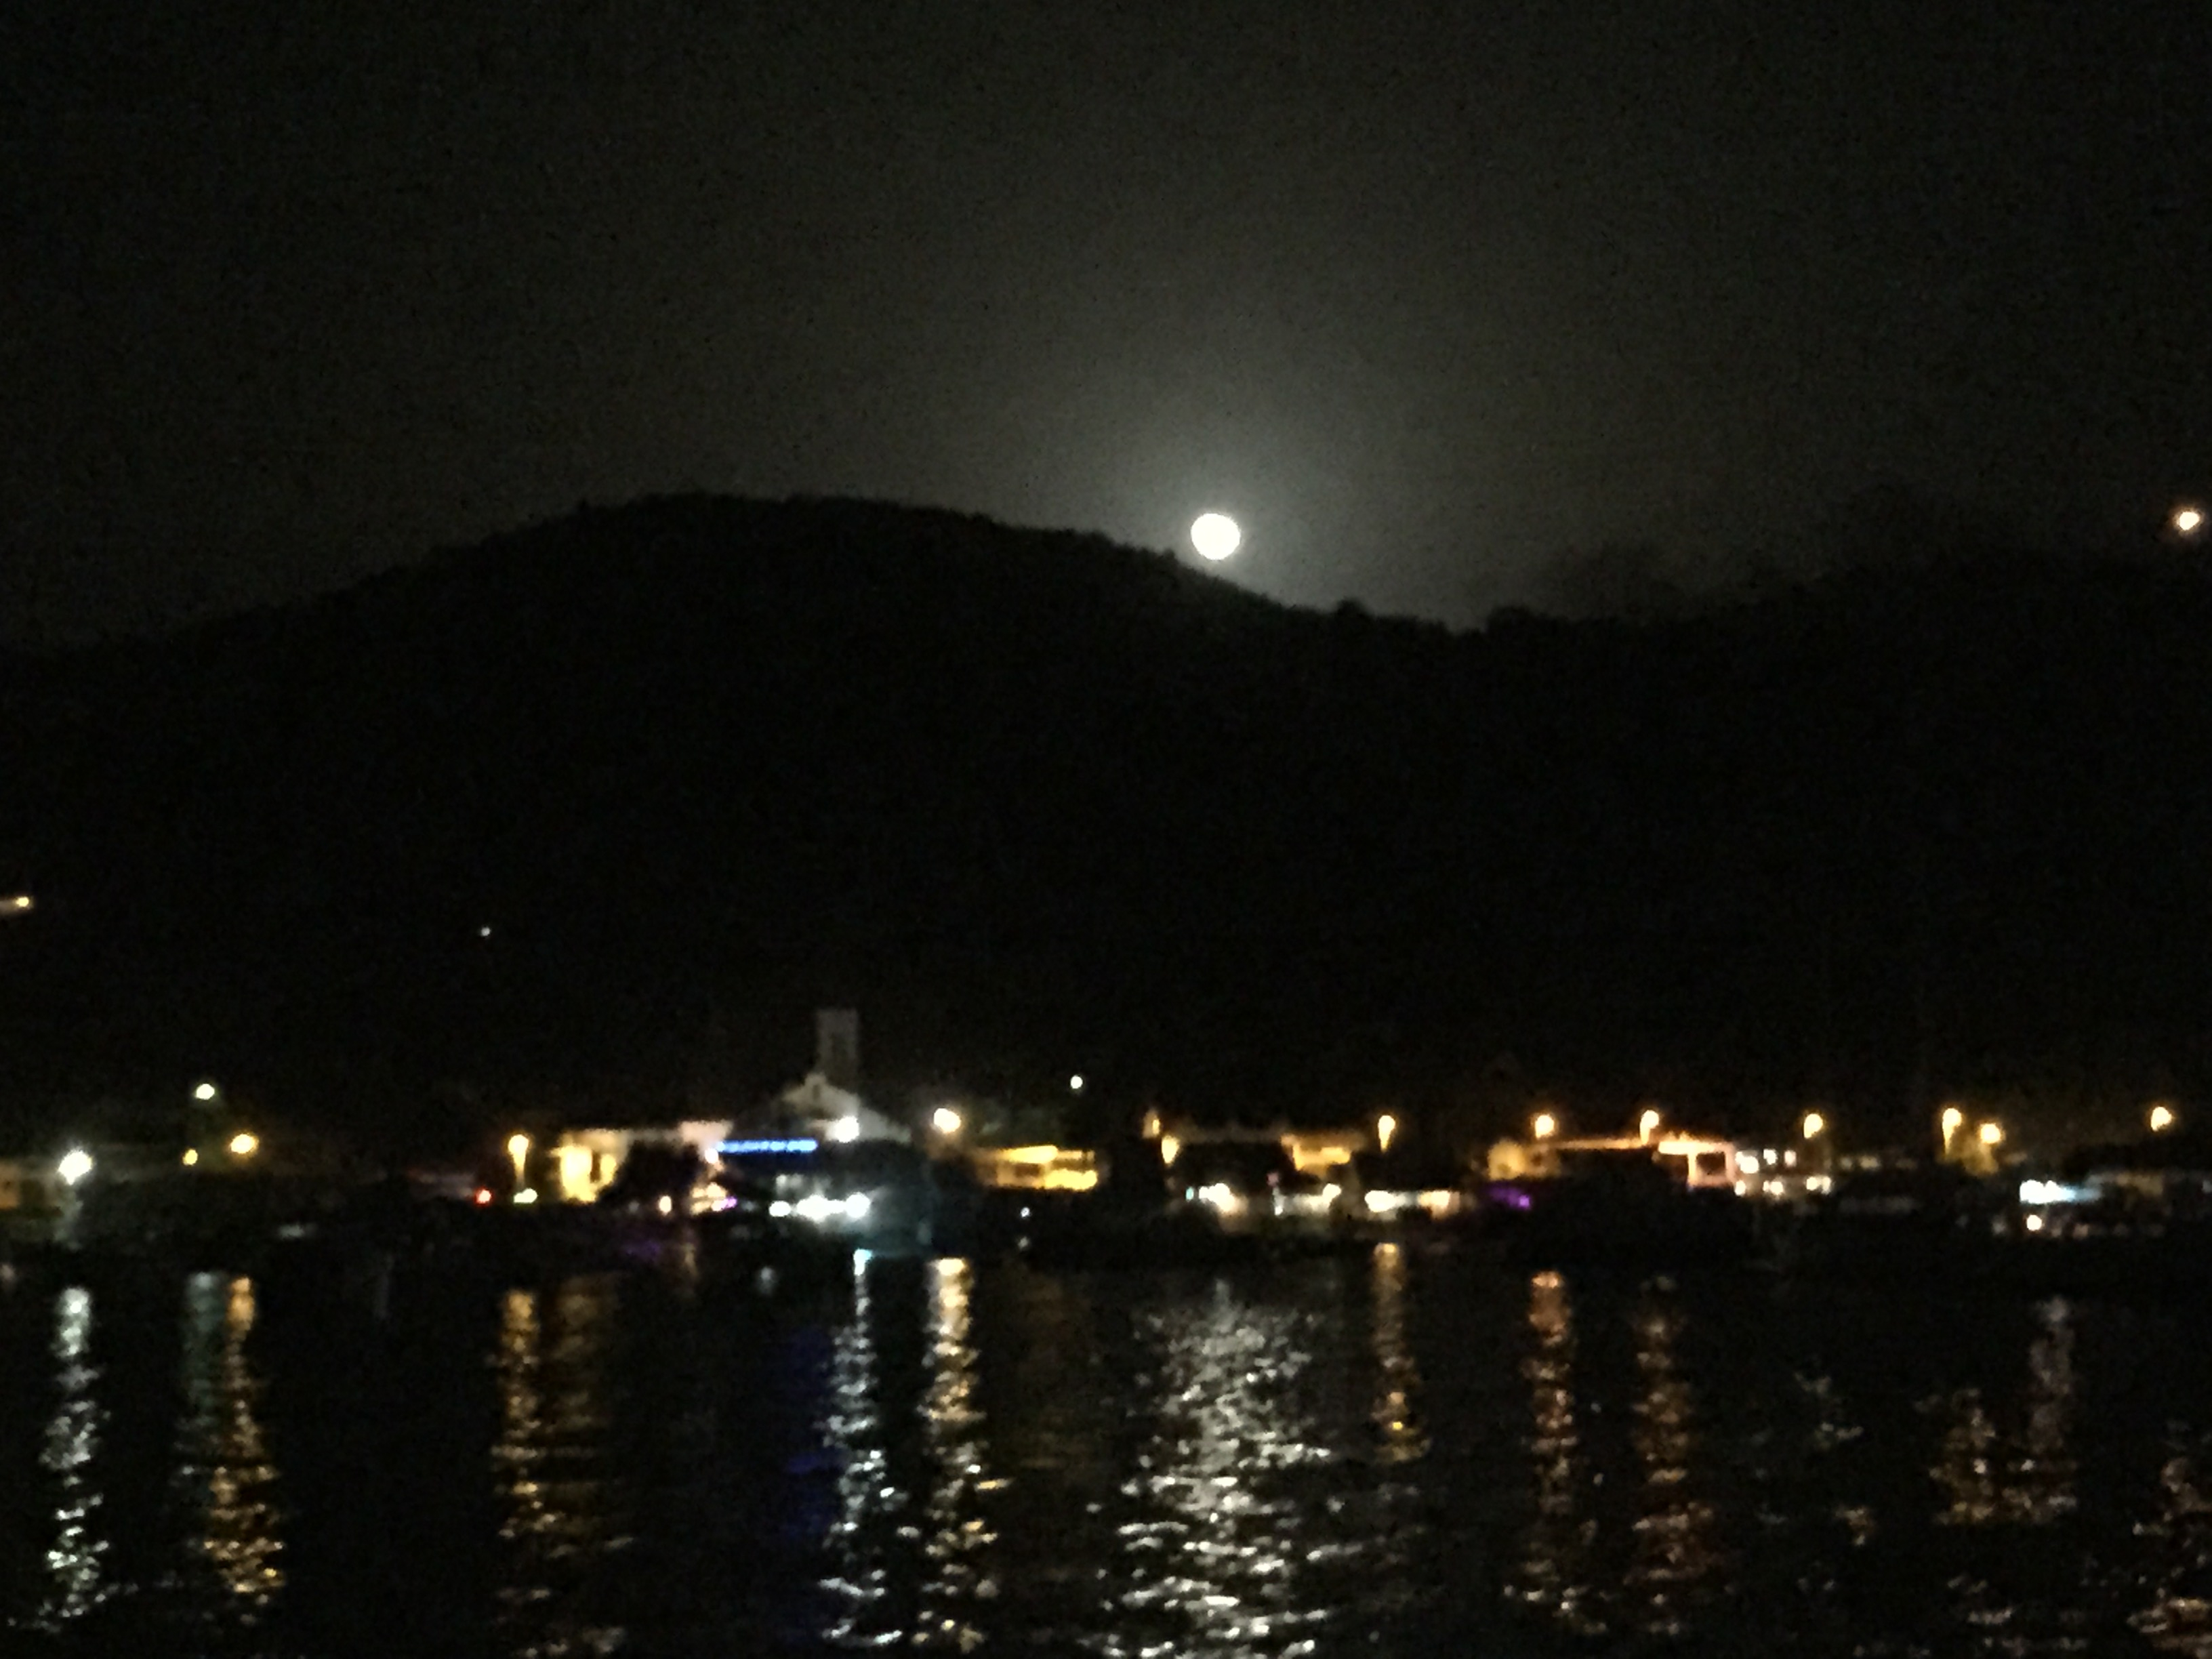 And a beautiful moonrise.